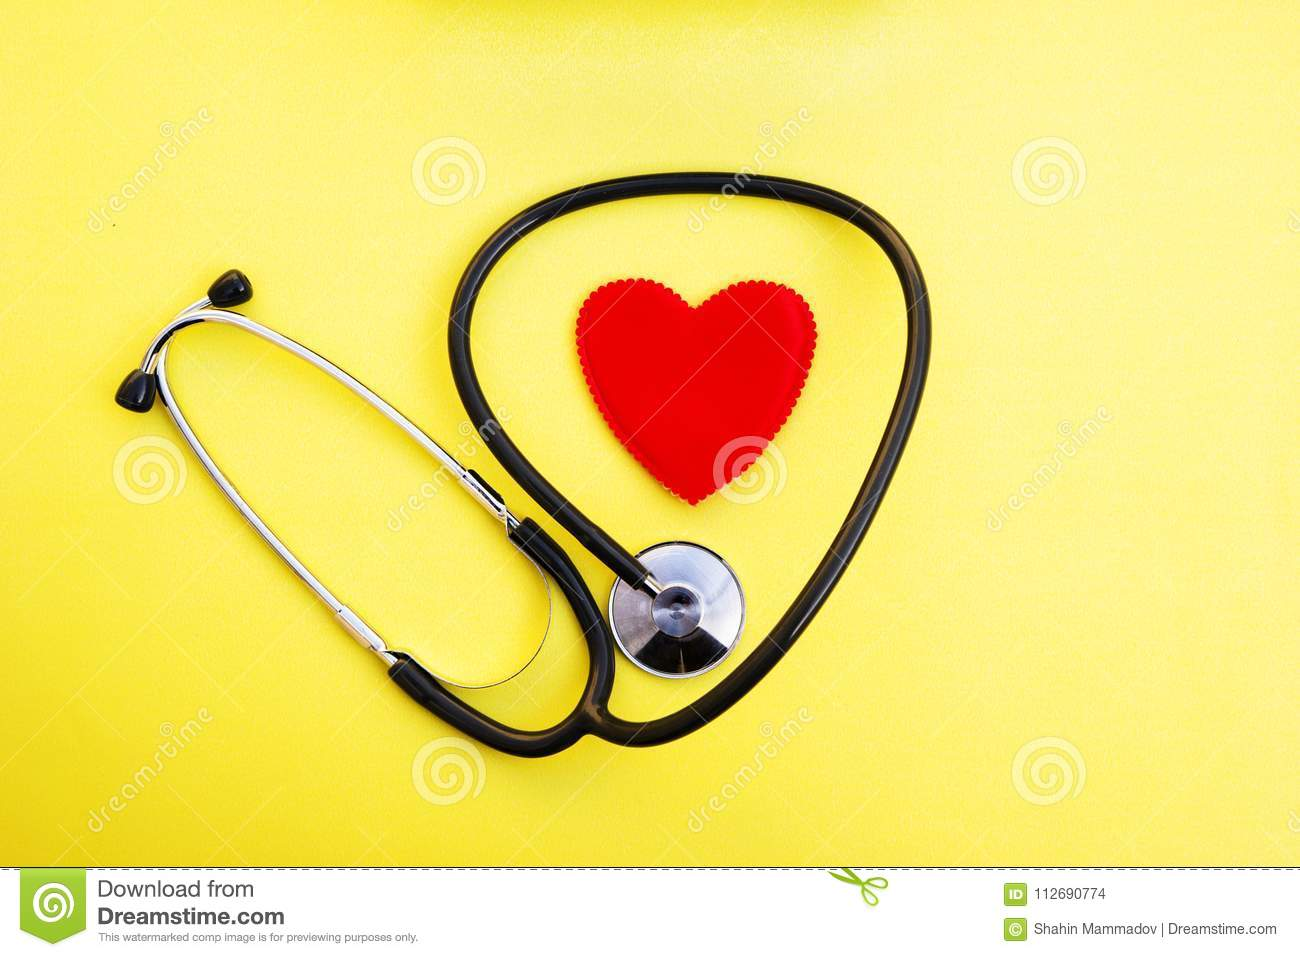 Red heart and stethoscope on yellow background, heart health care and medical technology concept, selective focus,